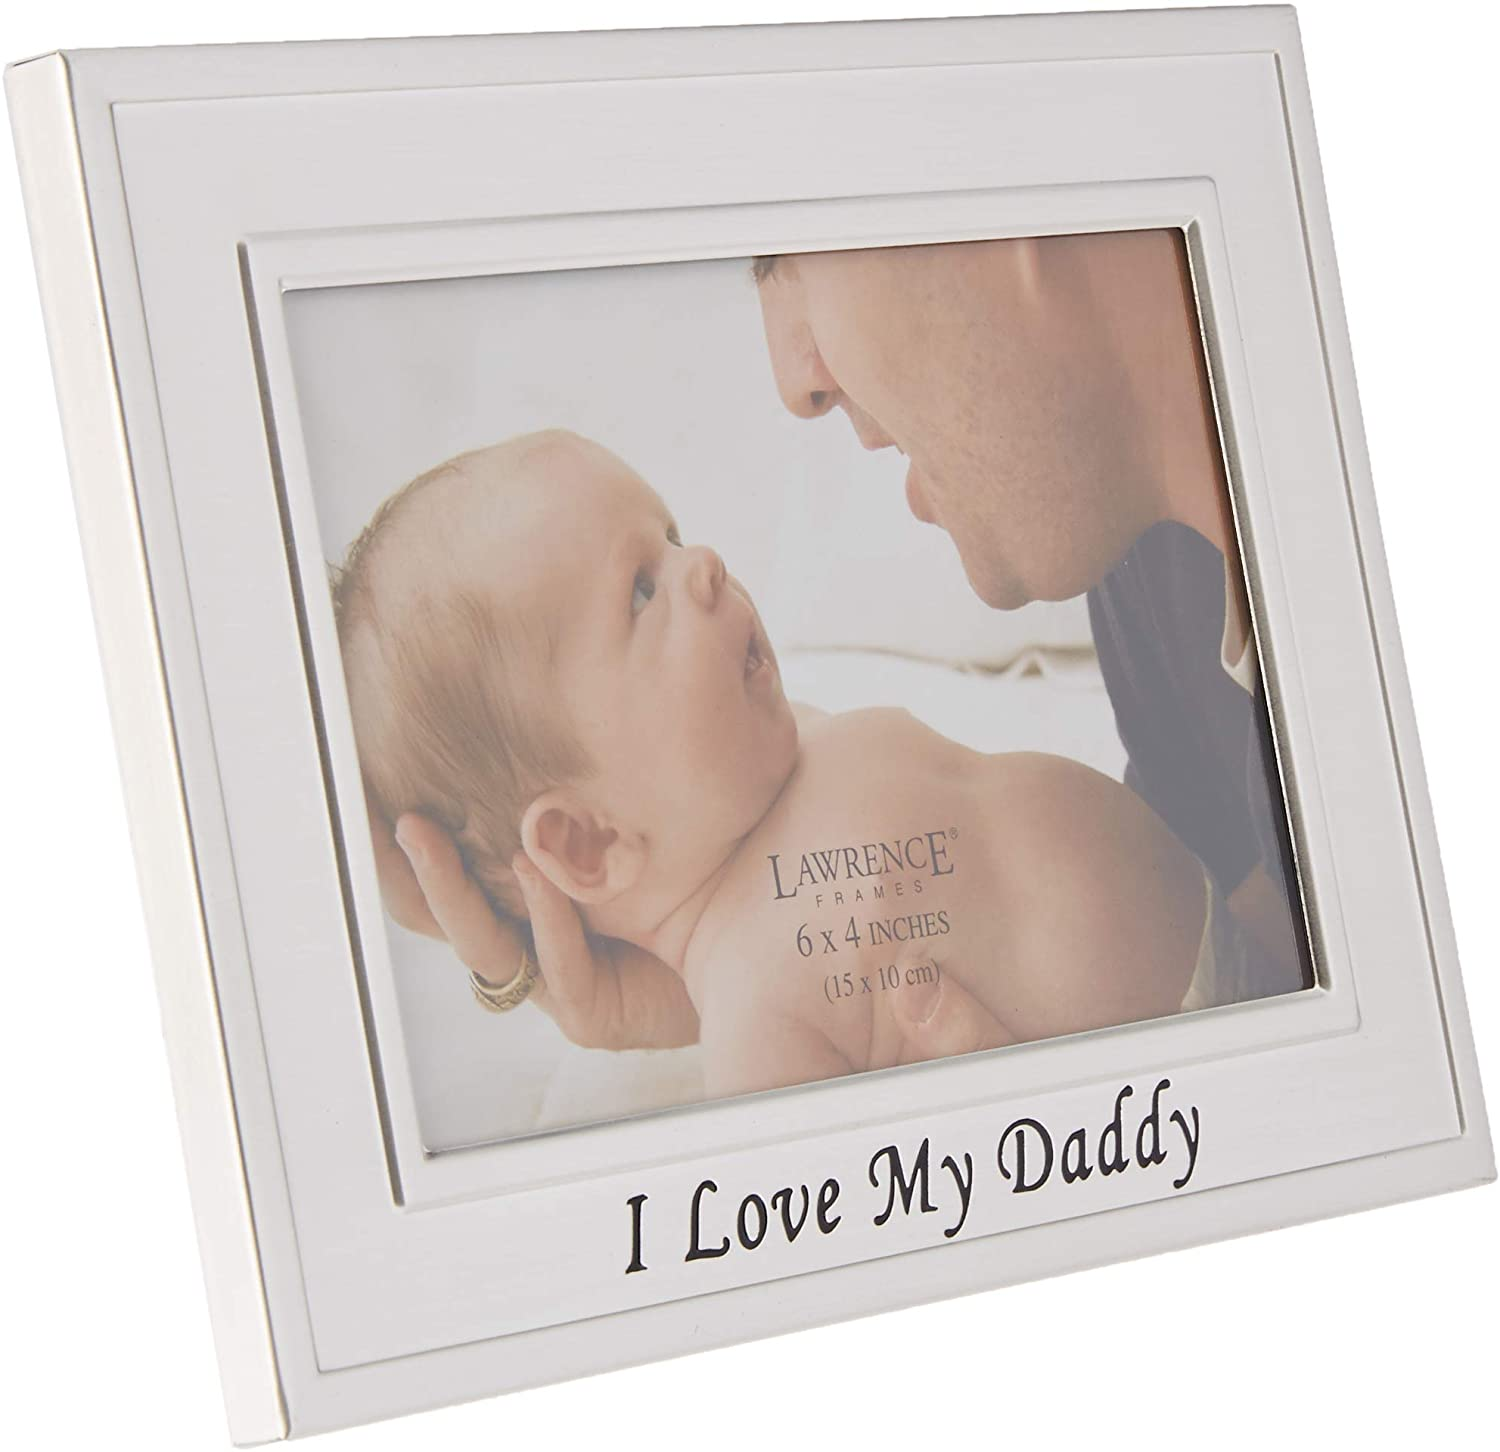 Lawrence Frames I Love My Daddy Silver Plated 6x4 Picture Frame